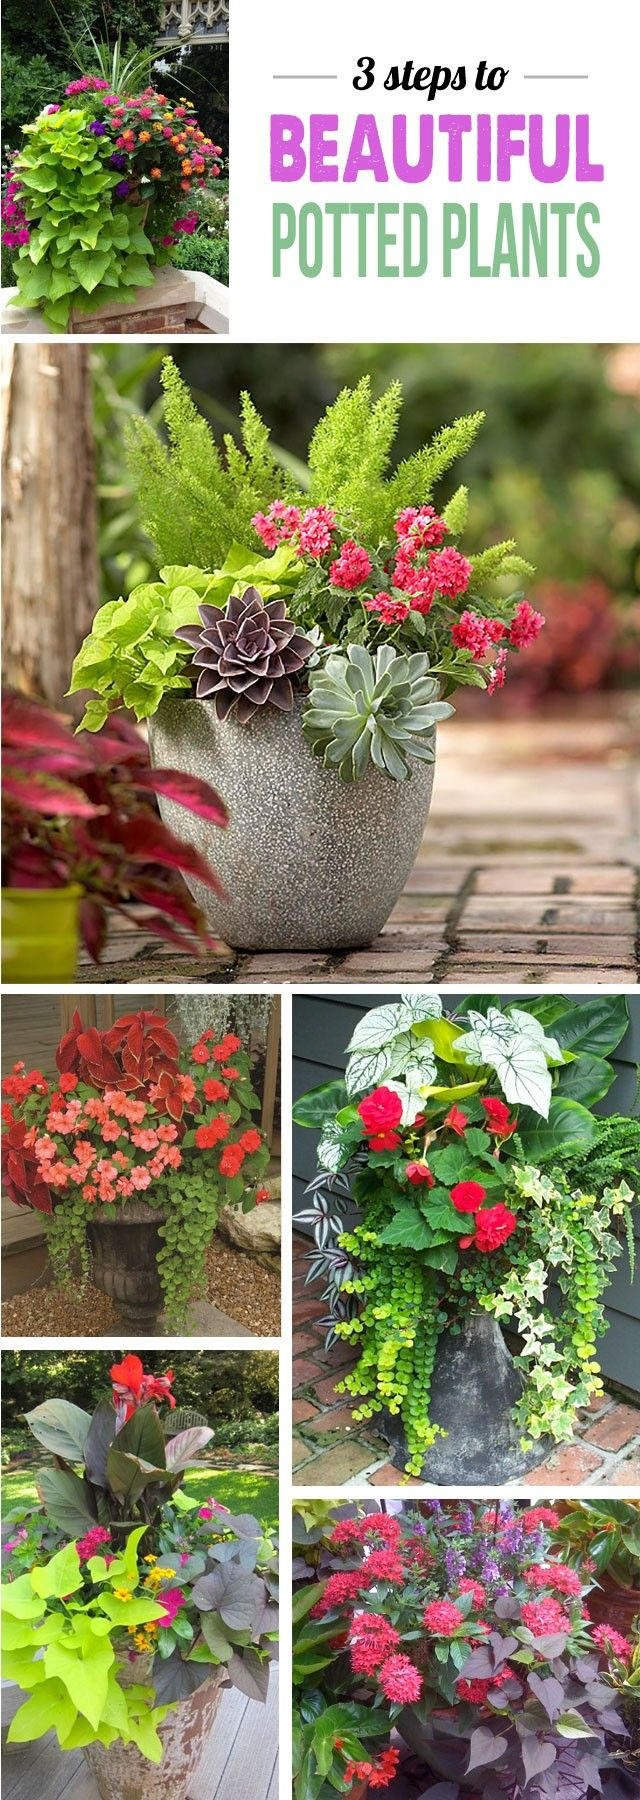 Best 25 Potted Plants Ideas On Pinterest Potted Plants Patio